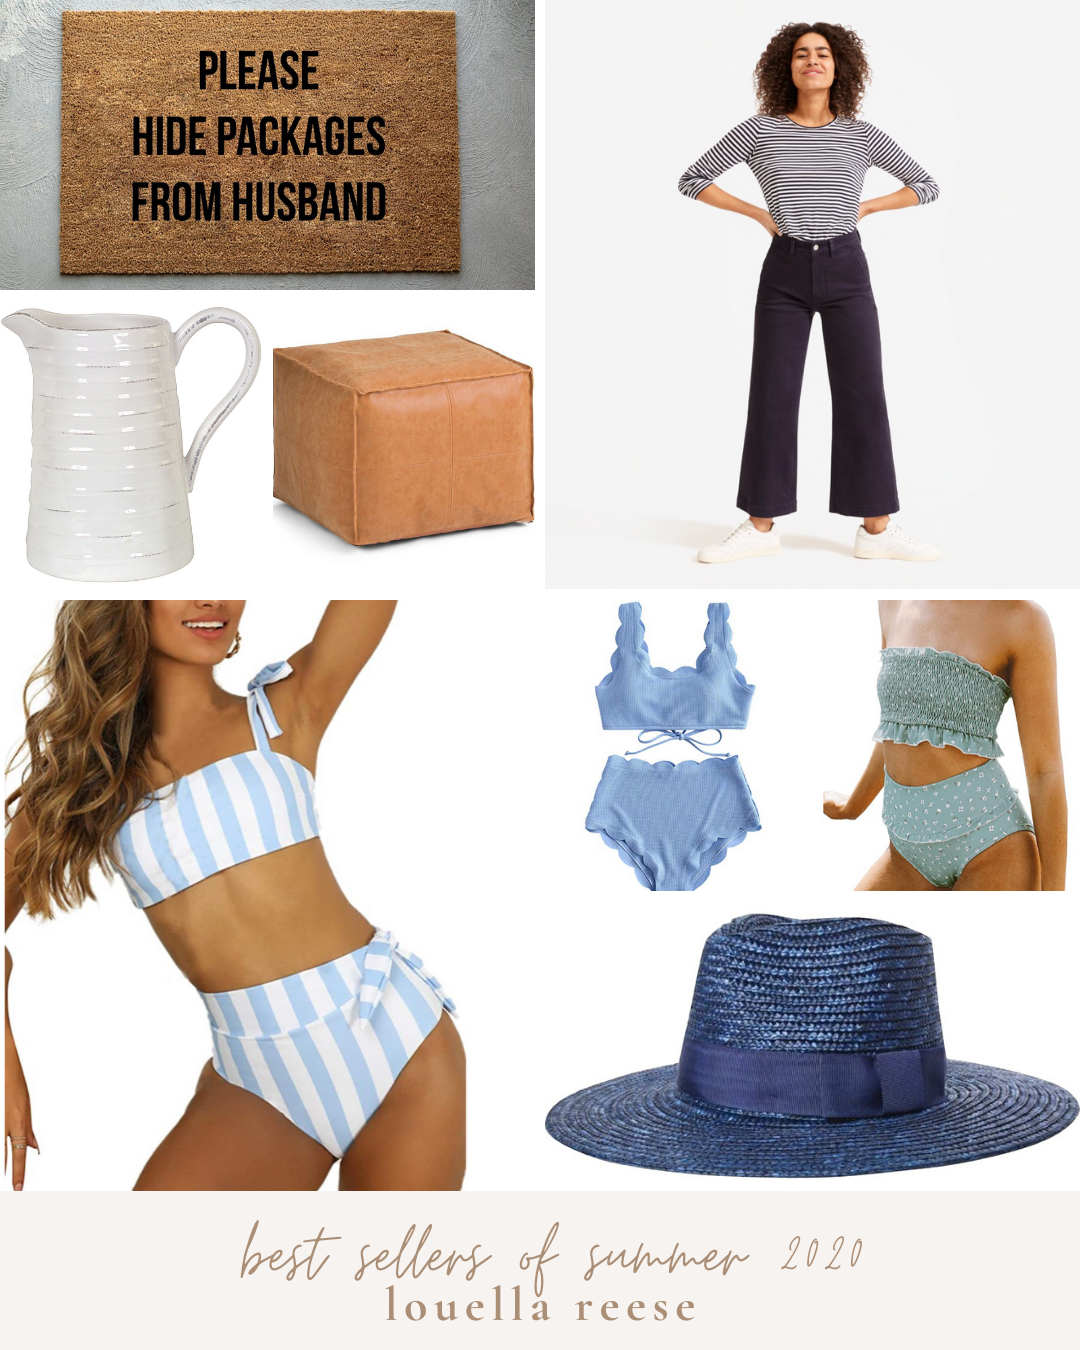 Best sellers of summer 2020 | Lifestyle | Louella Reese